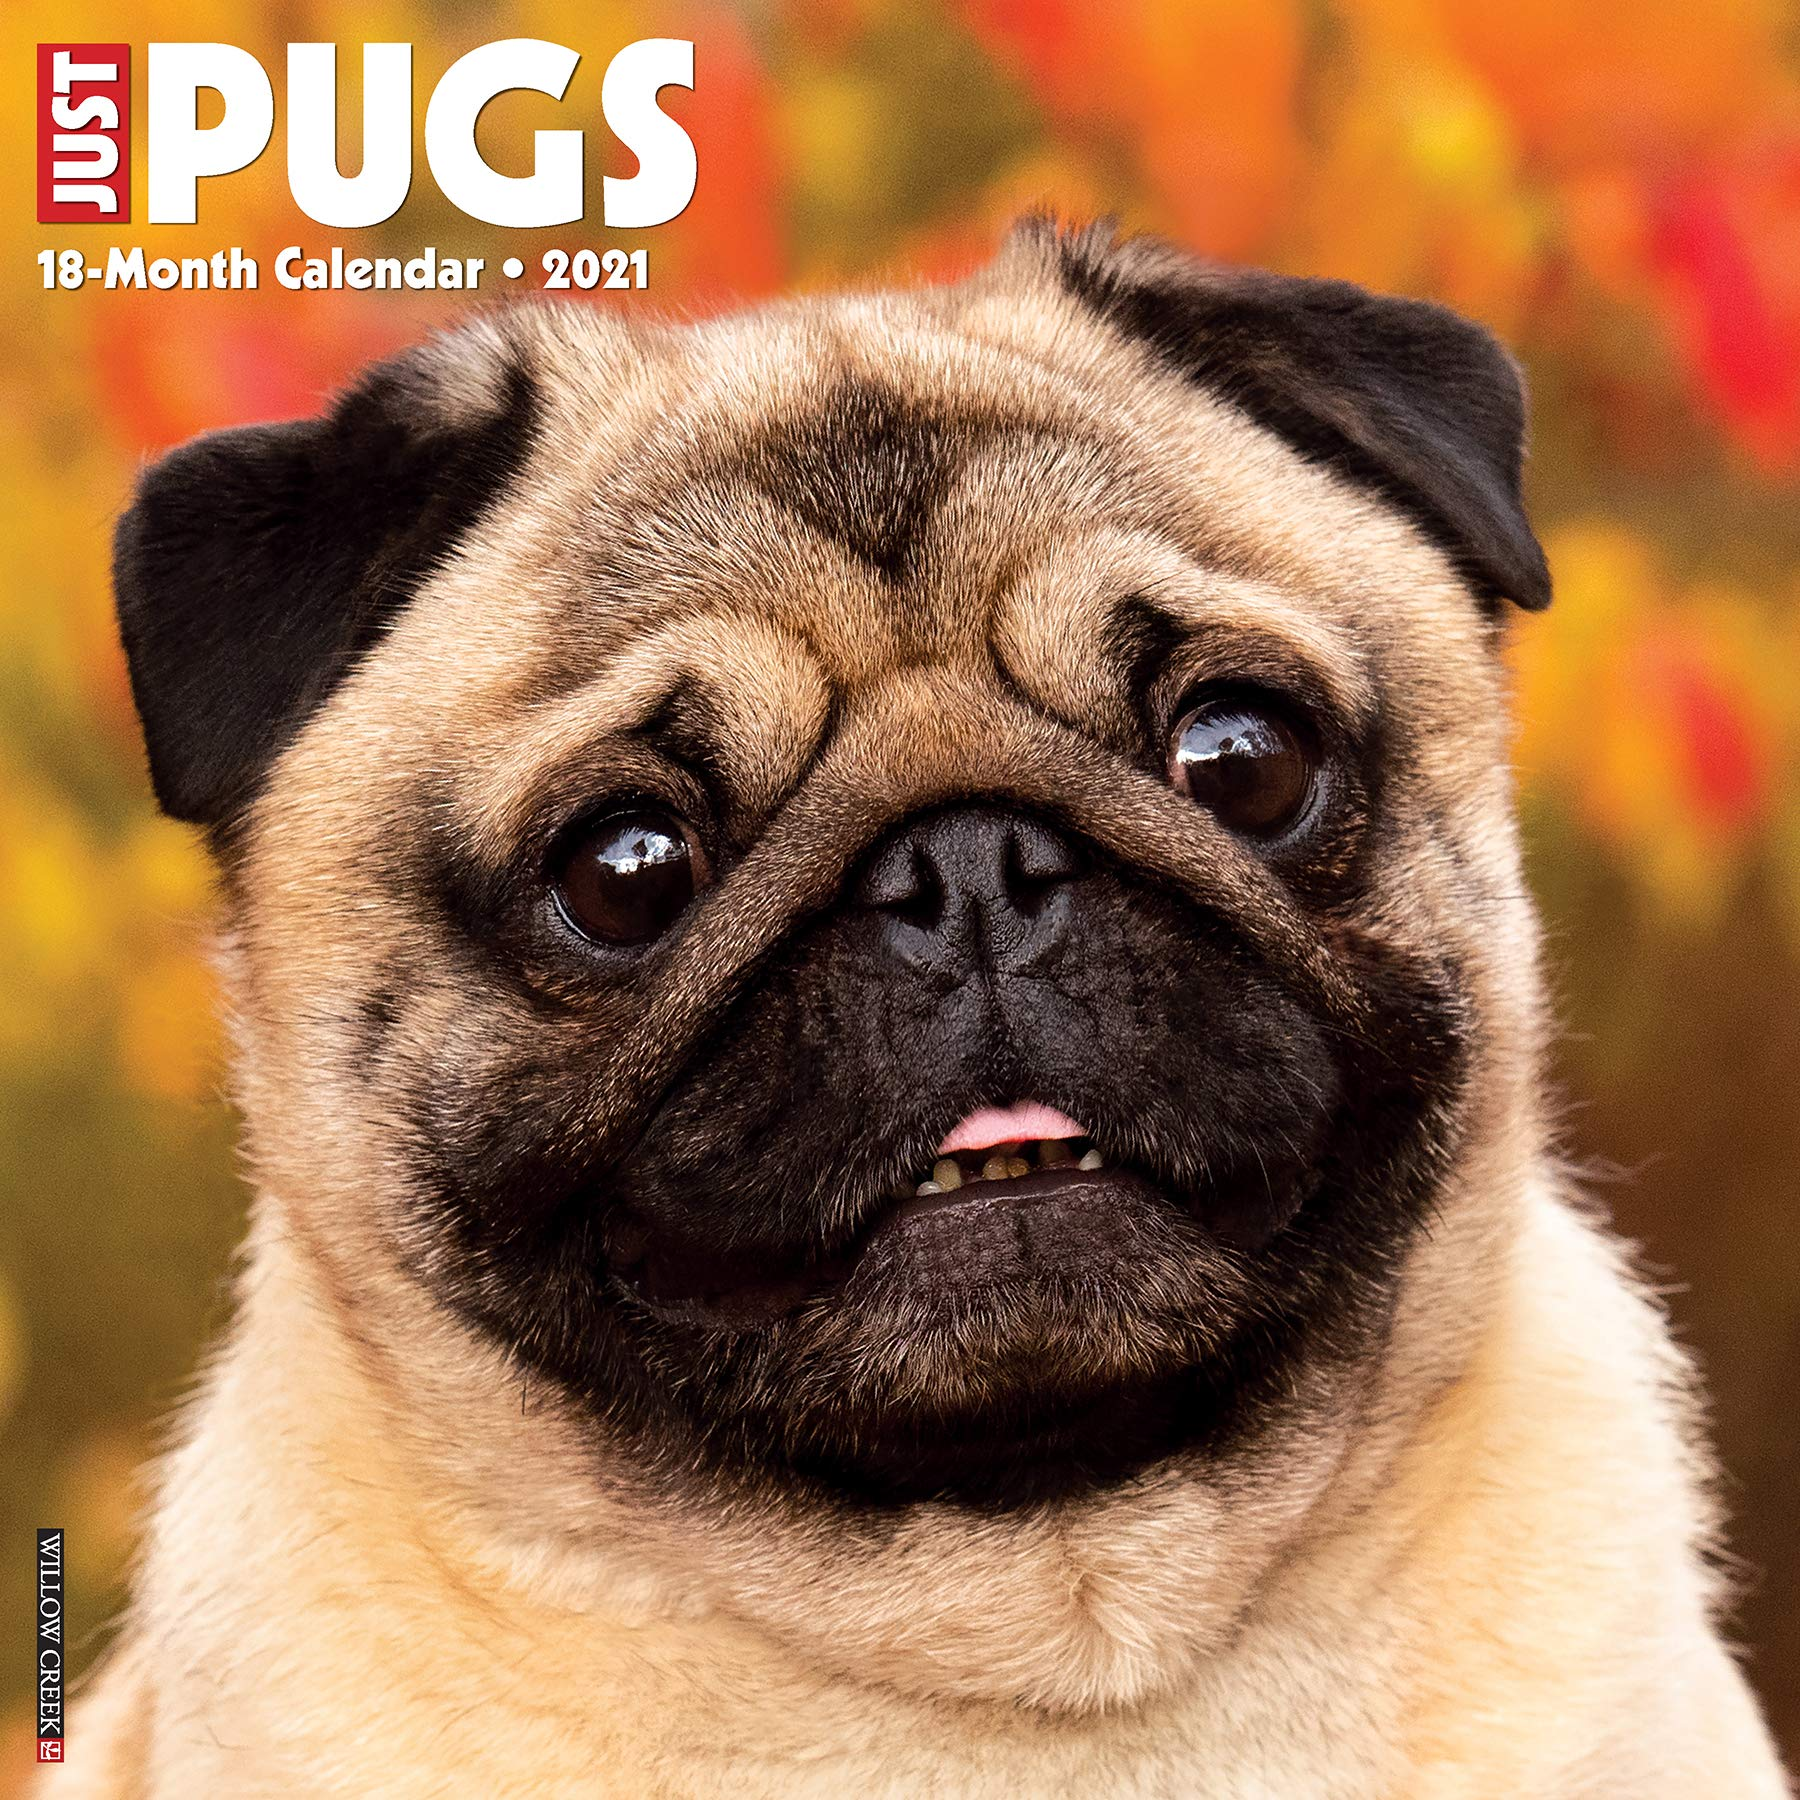 Just Pugs 2021 Wall Calendar (Dog Breed Calendar): Willow Creek